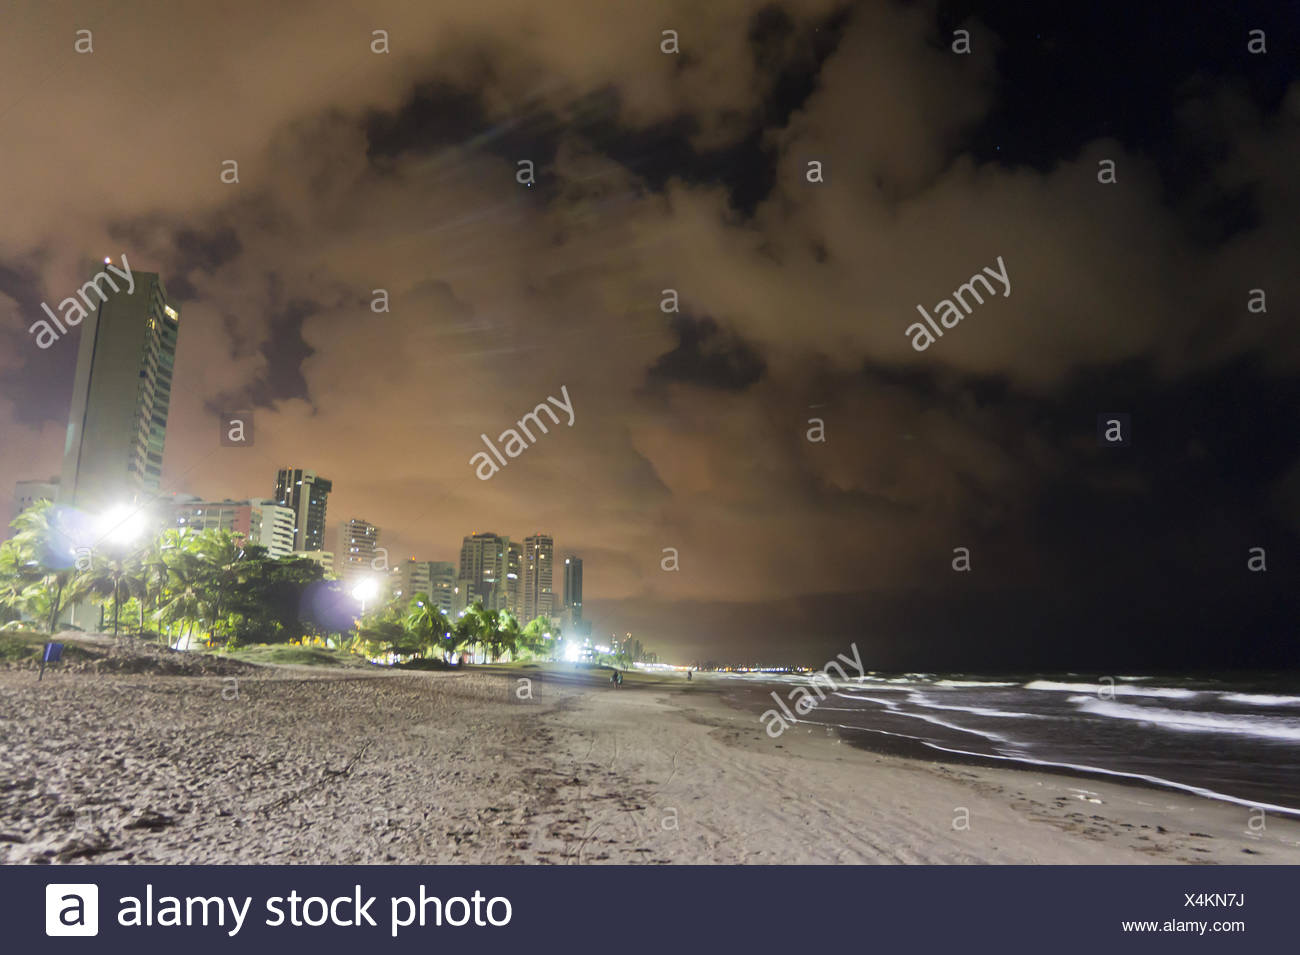 Brazil, Recife Night - Stock Image